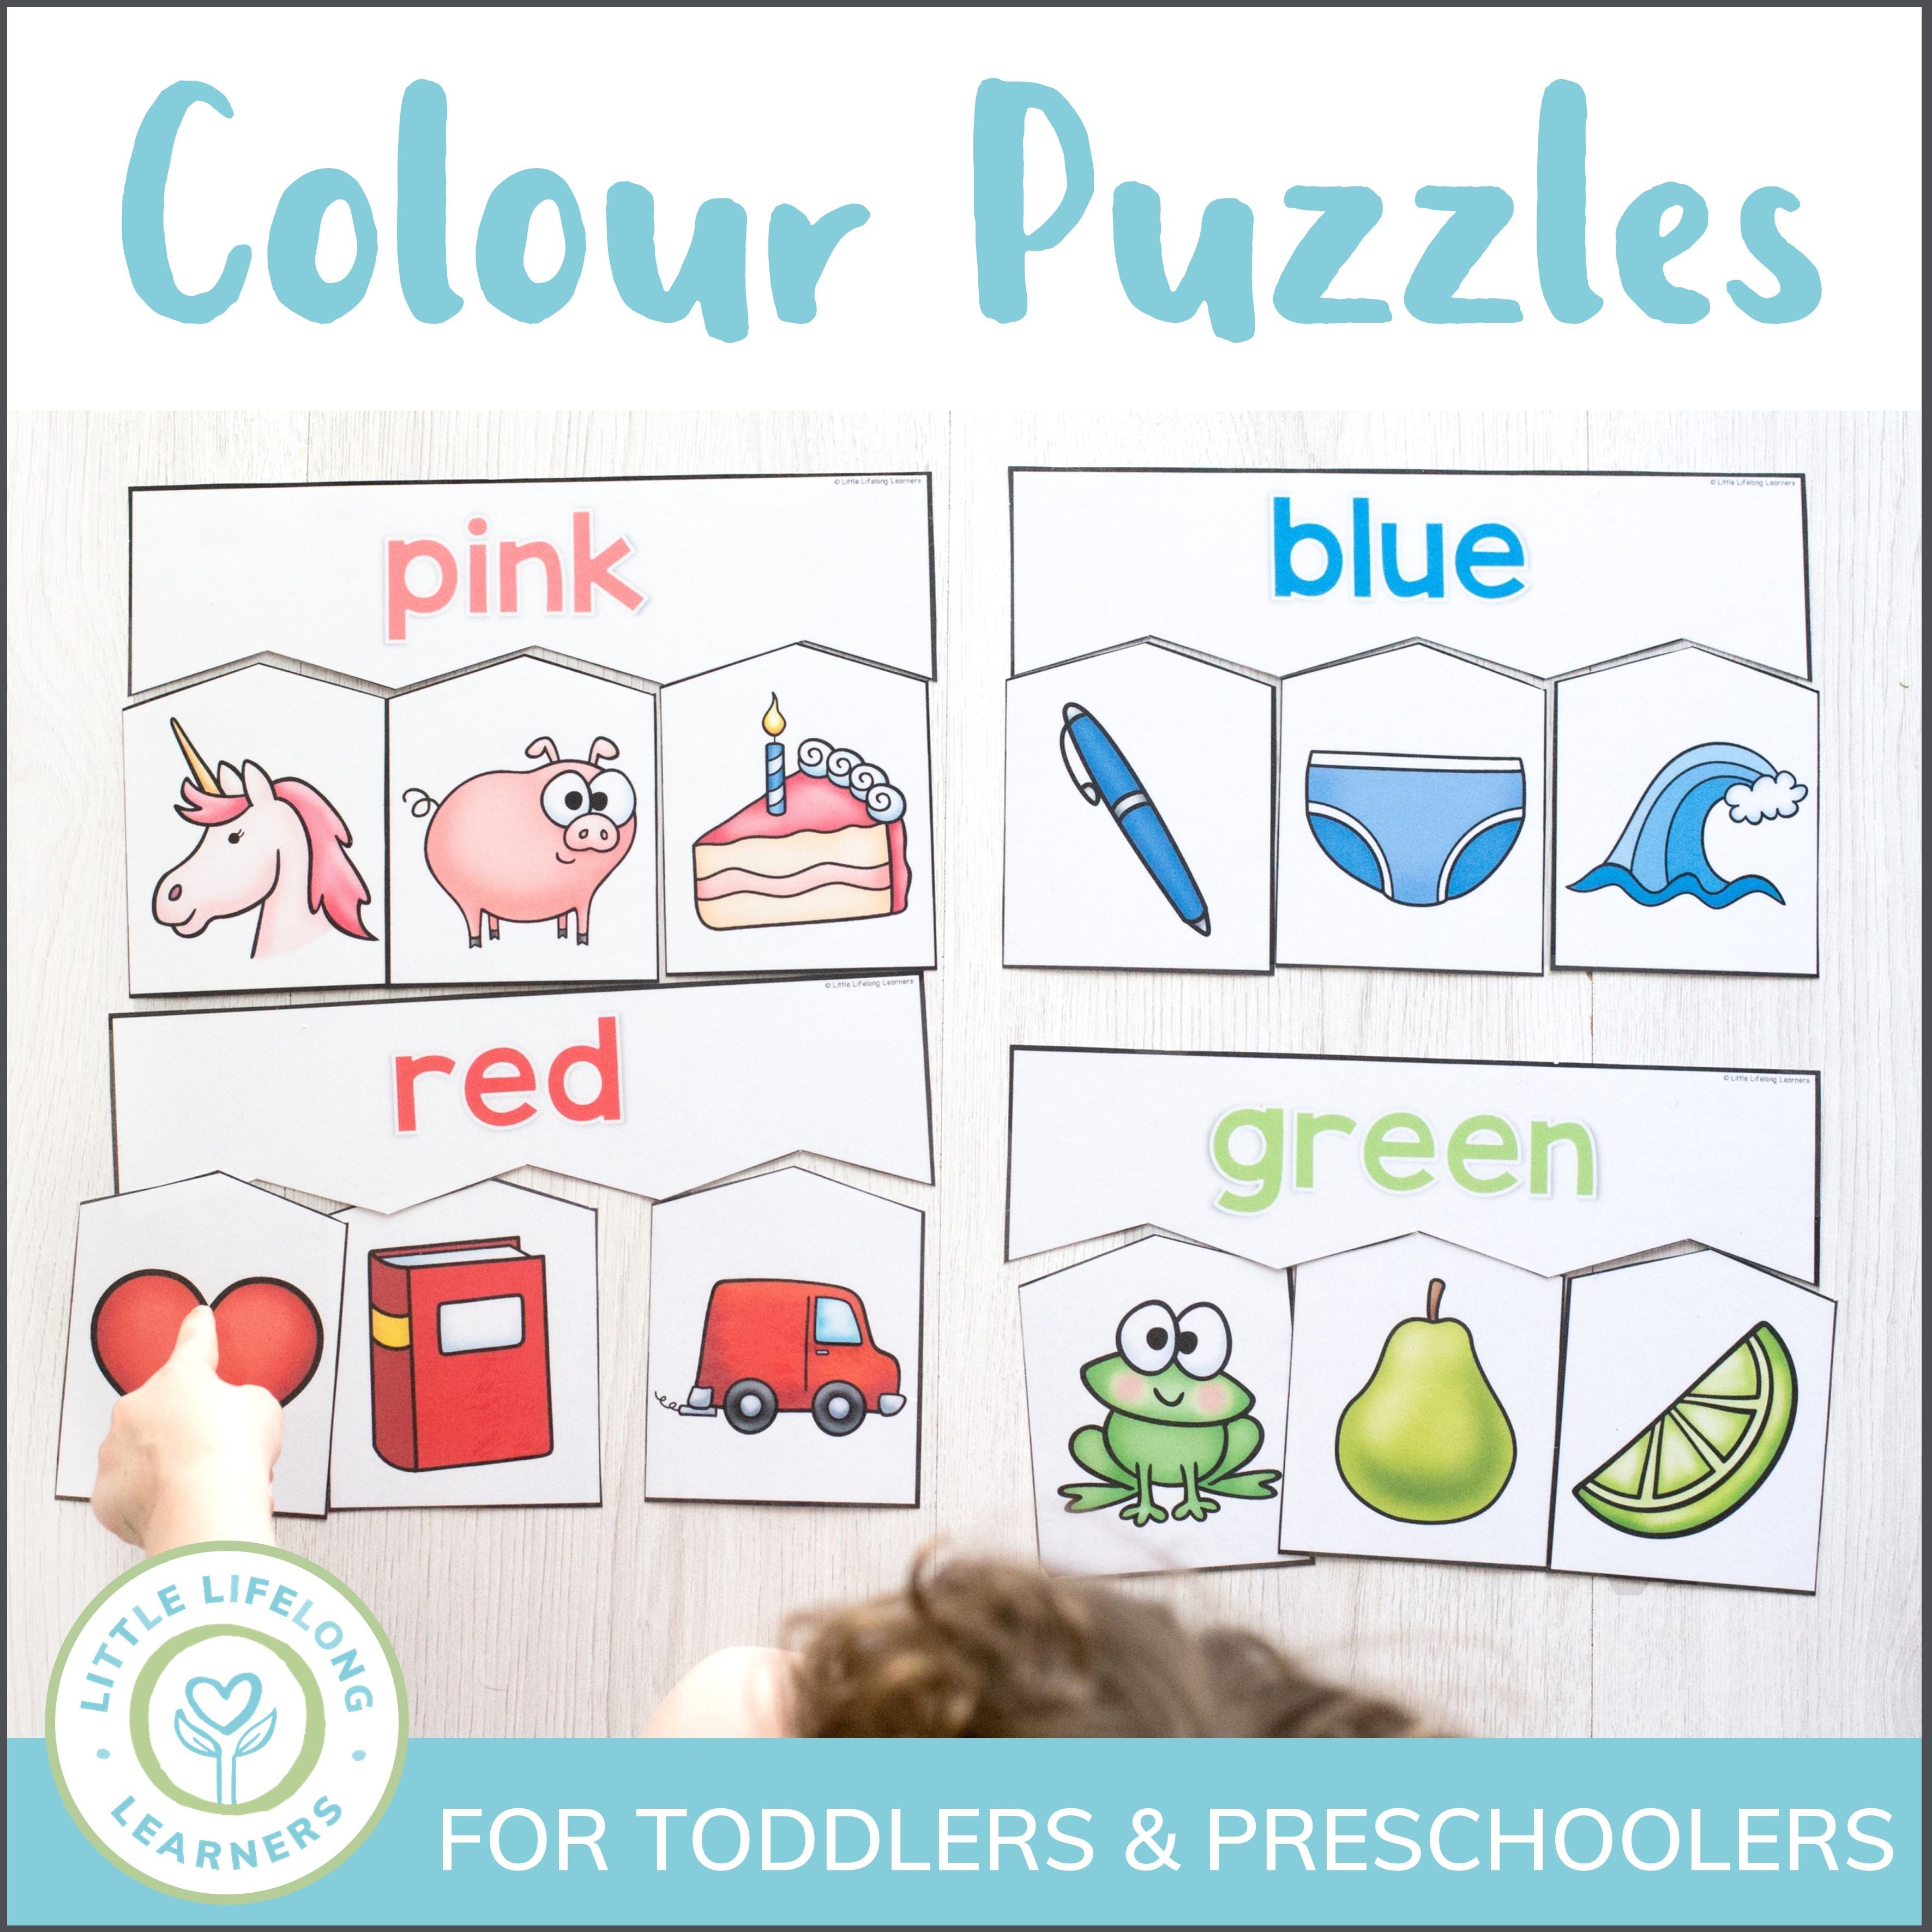 Colour Puzzles For Toddlers And Preschoolers - Little Lifelong Learners - Printable Puzzles For Toddlers